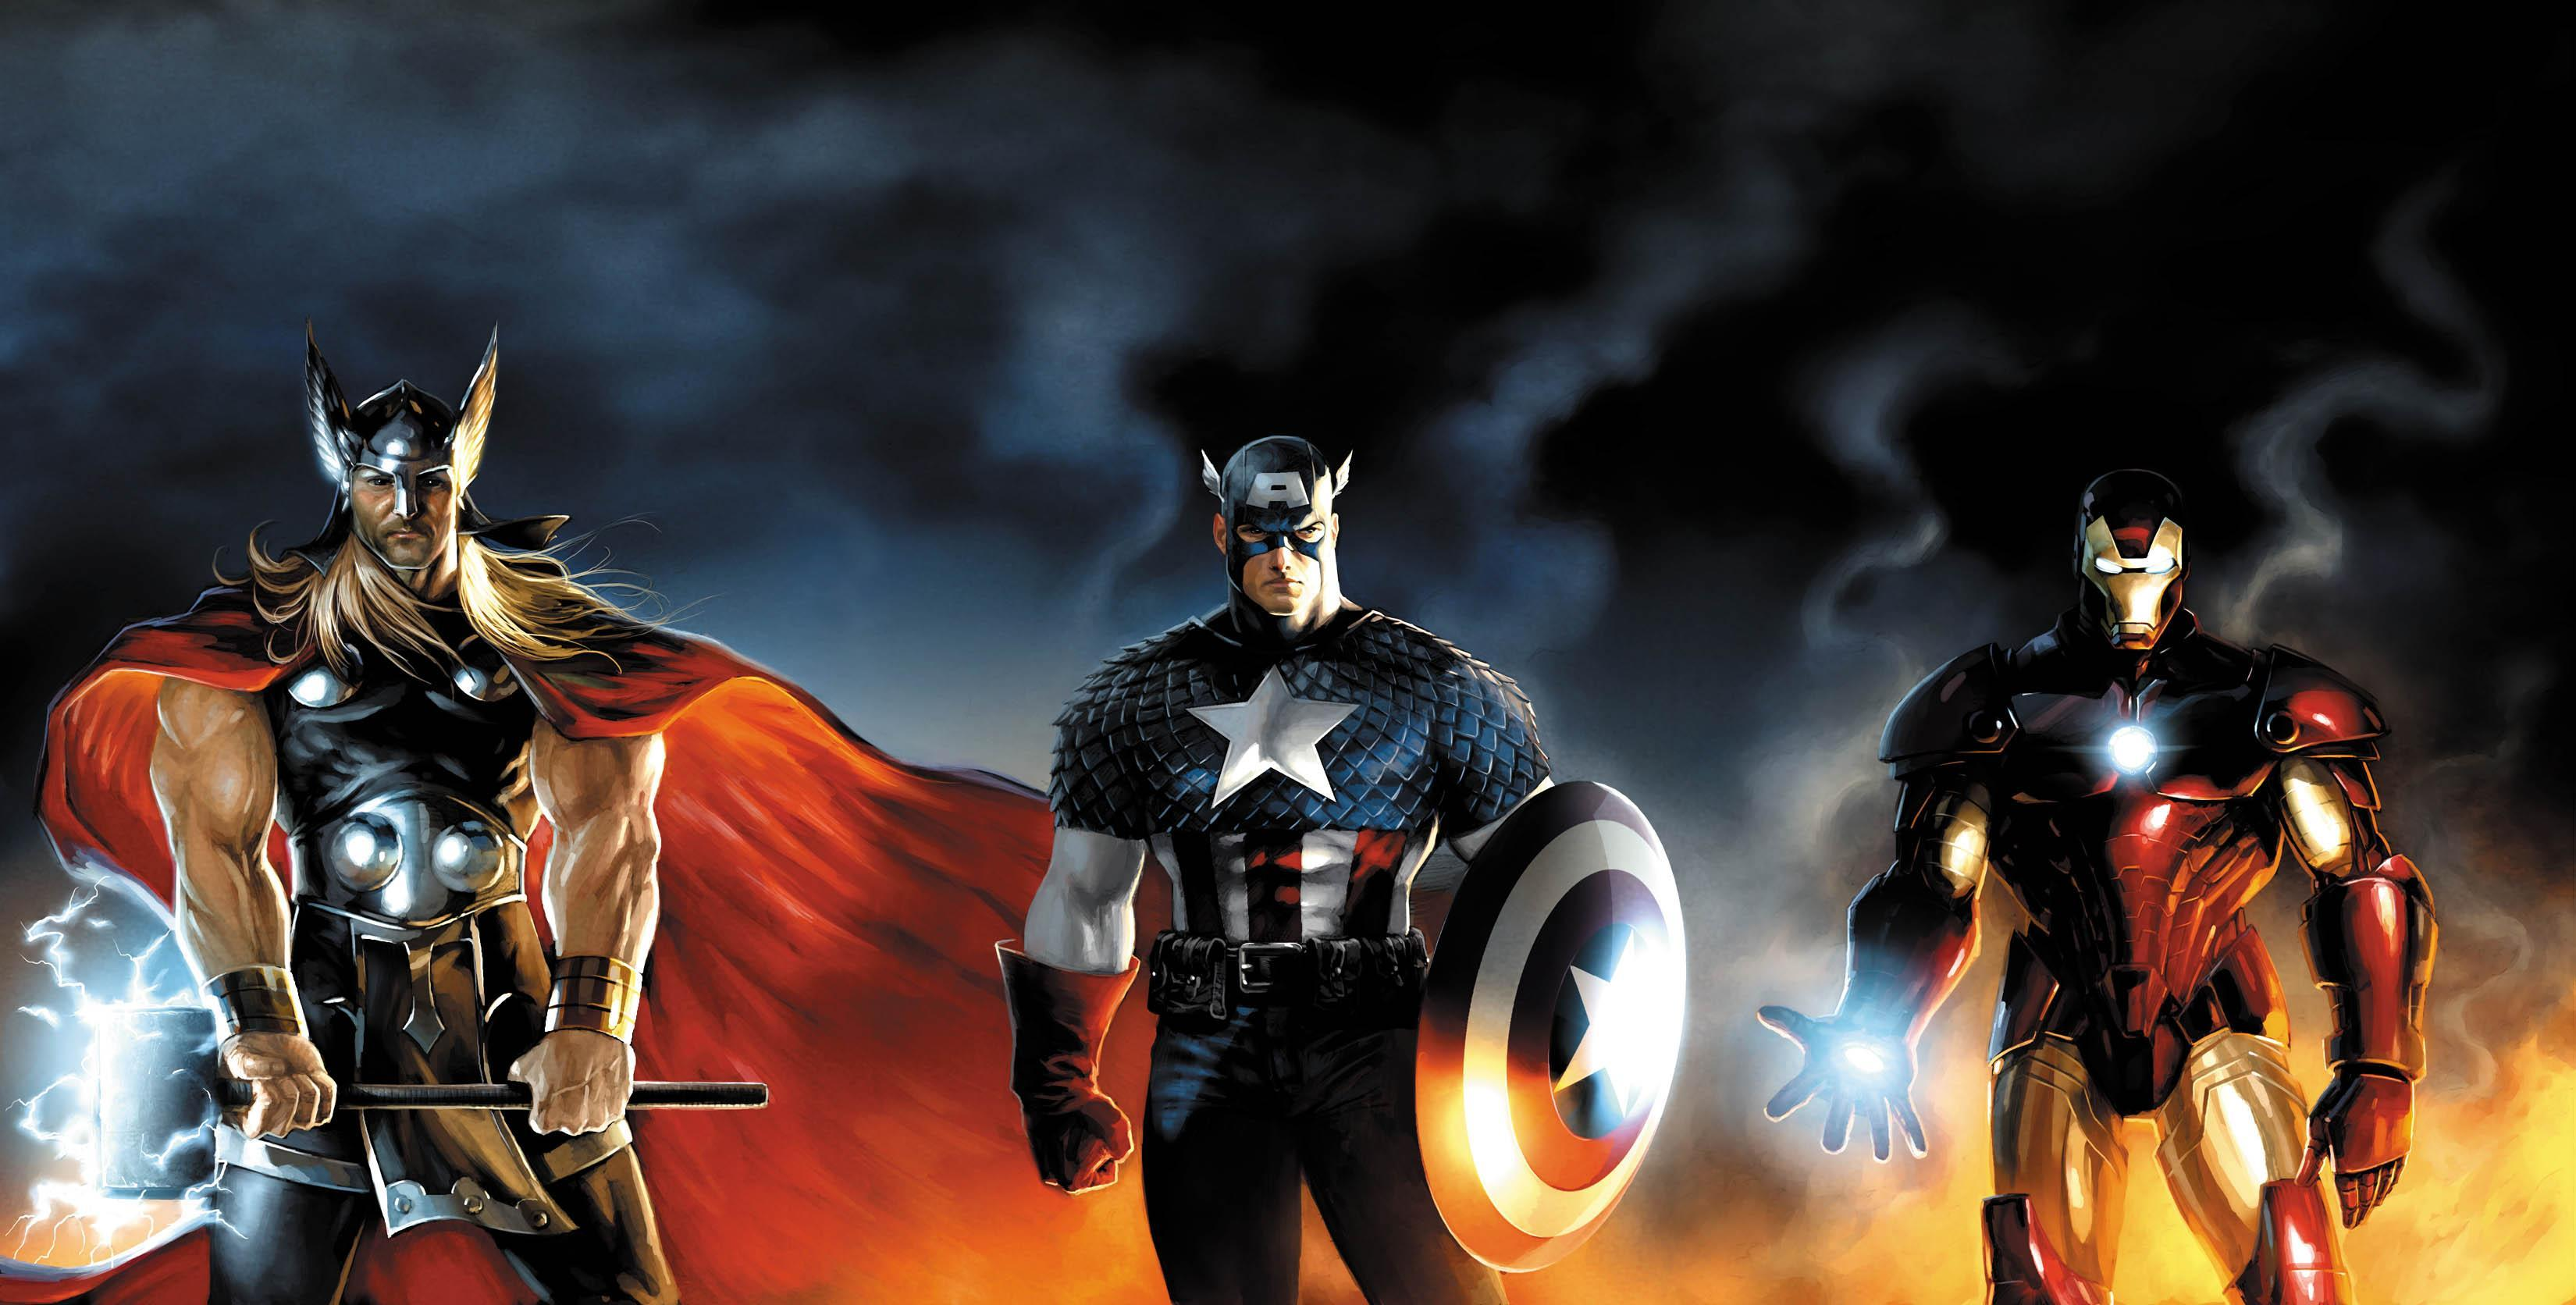 Upcoming Marvel Movies | Rumors, Release Dates, and More ...